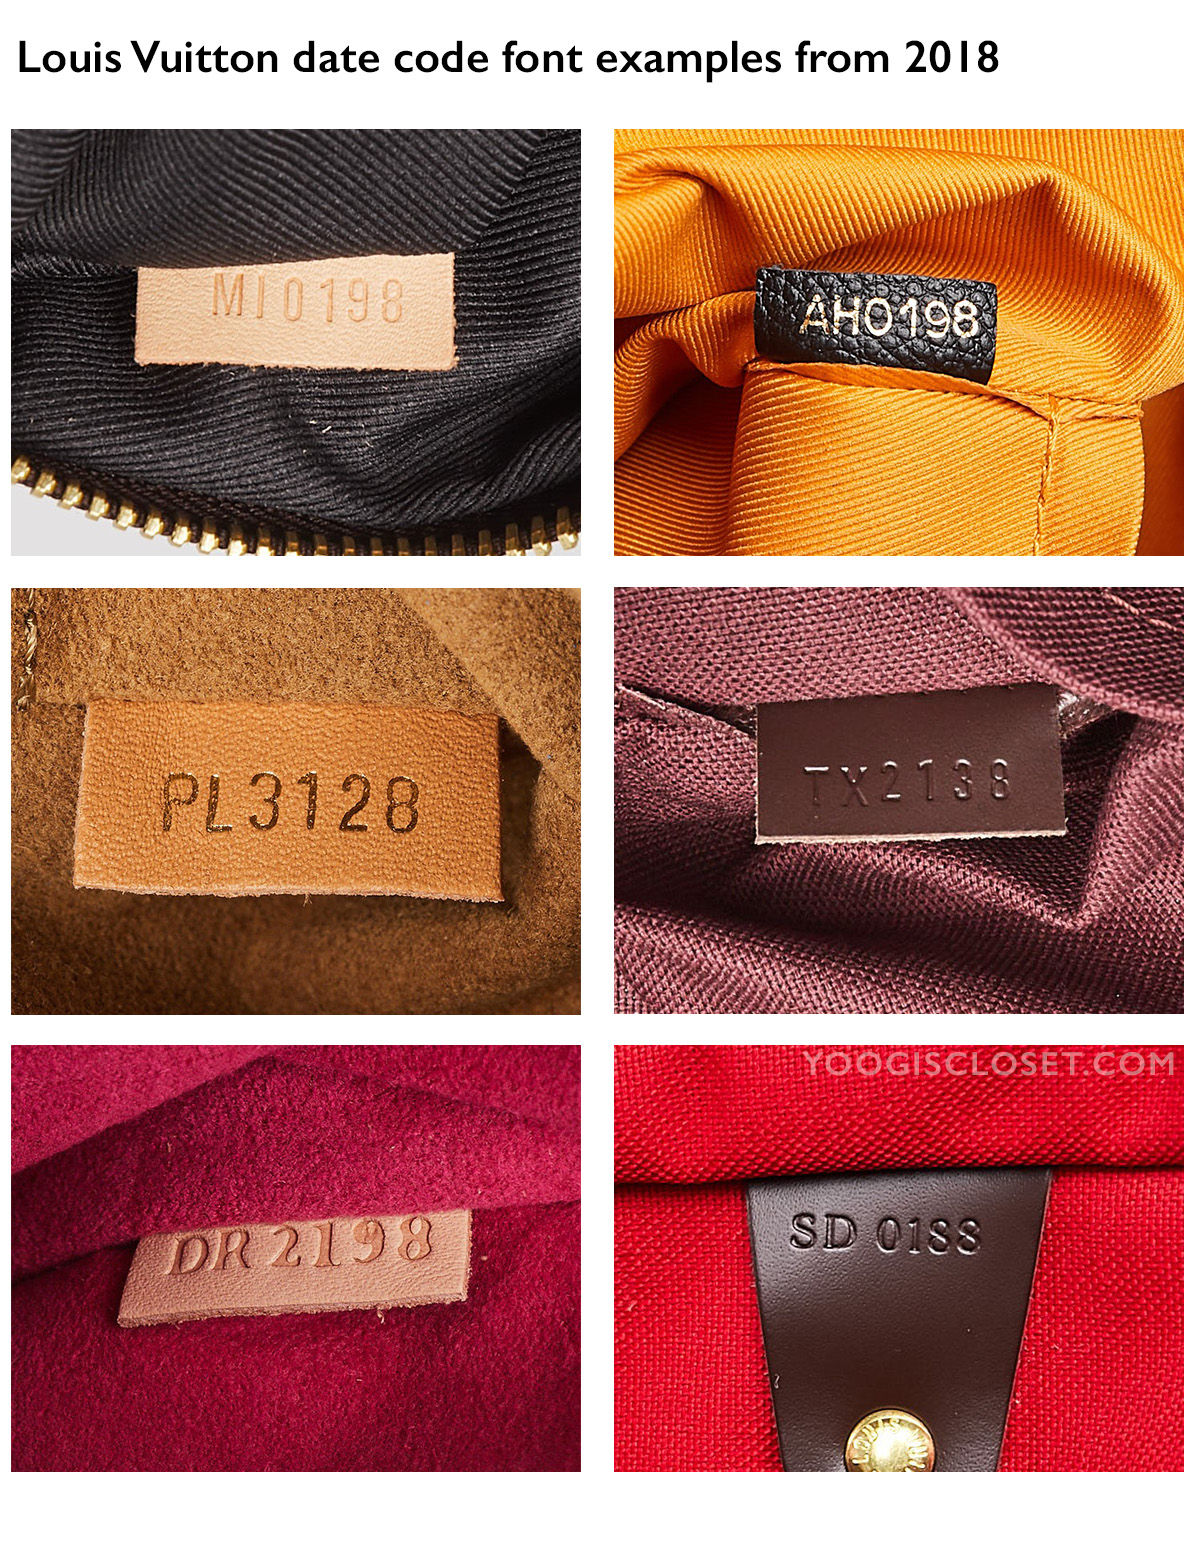 Louis Vuitton Date Code Examples from 2018   Yoogi's Closet Authenticated Pre-Owned Luxury yoogiscloset.com